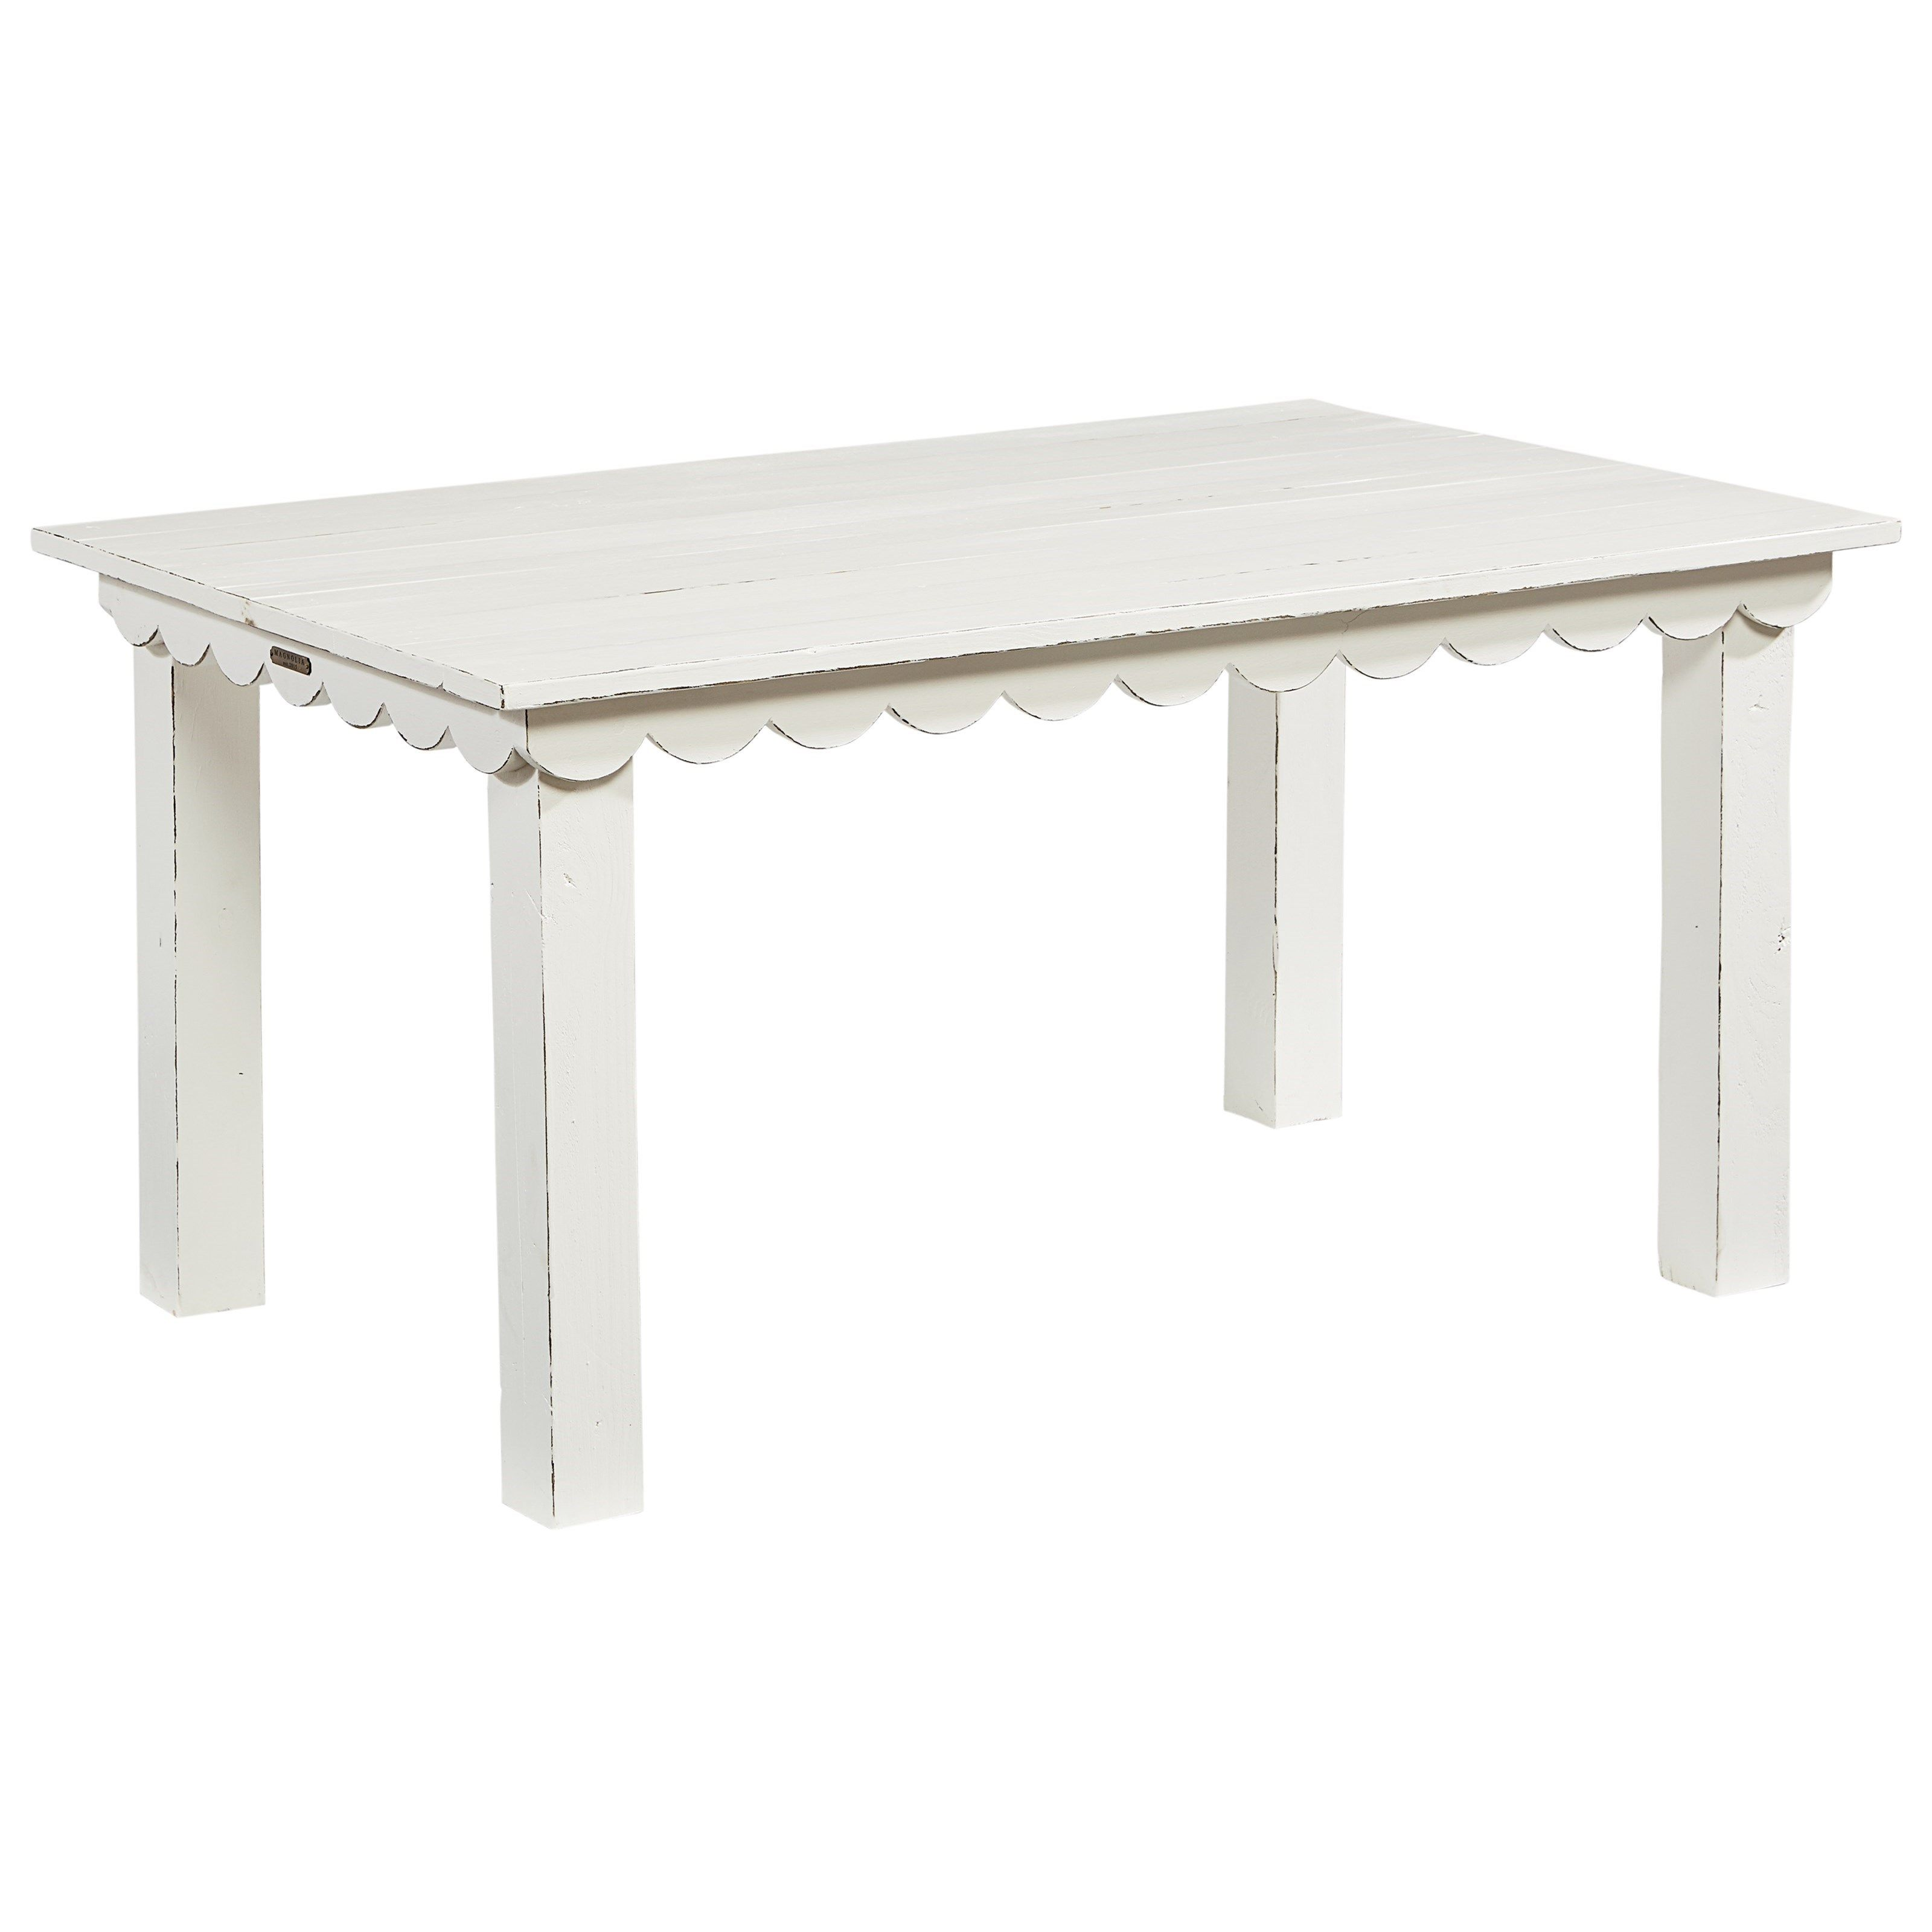 Farmhouse Kid s Table with Scalloped Trim and Square Legs by